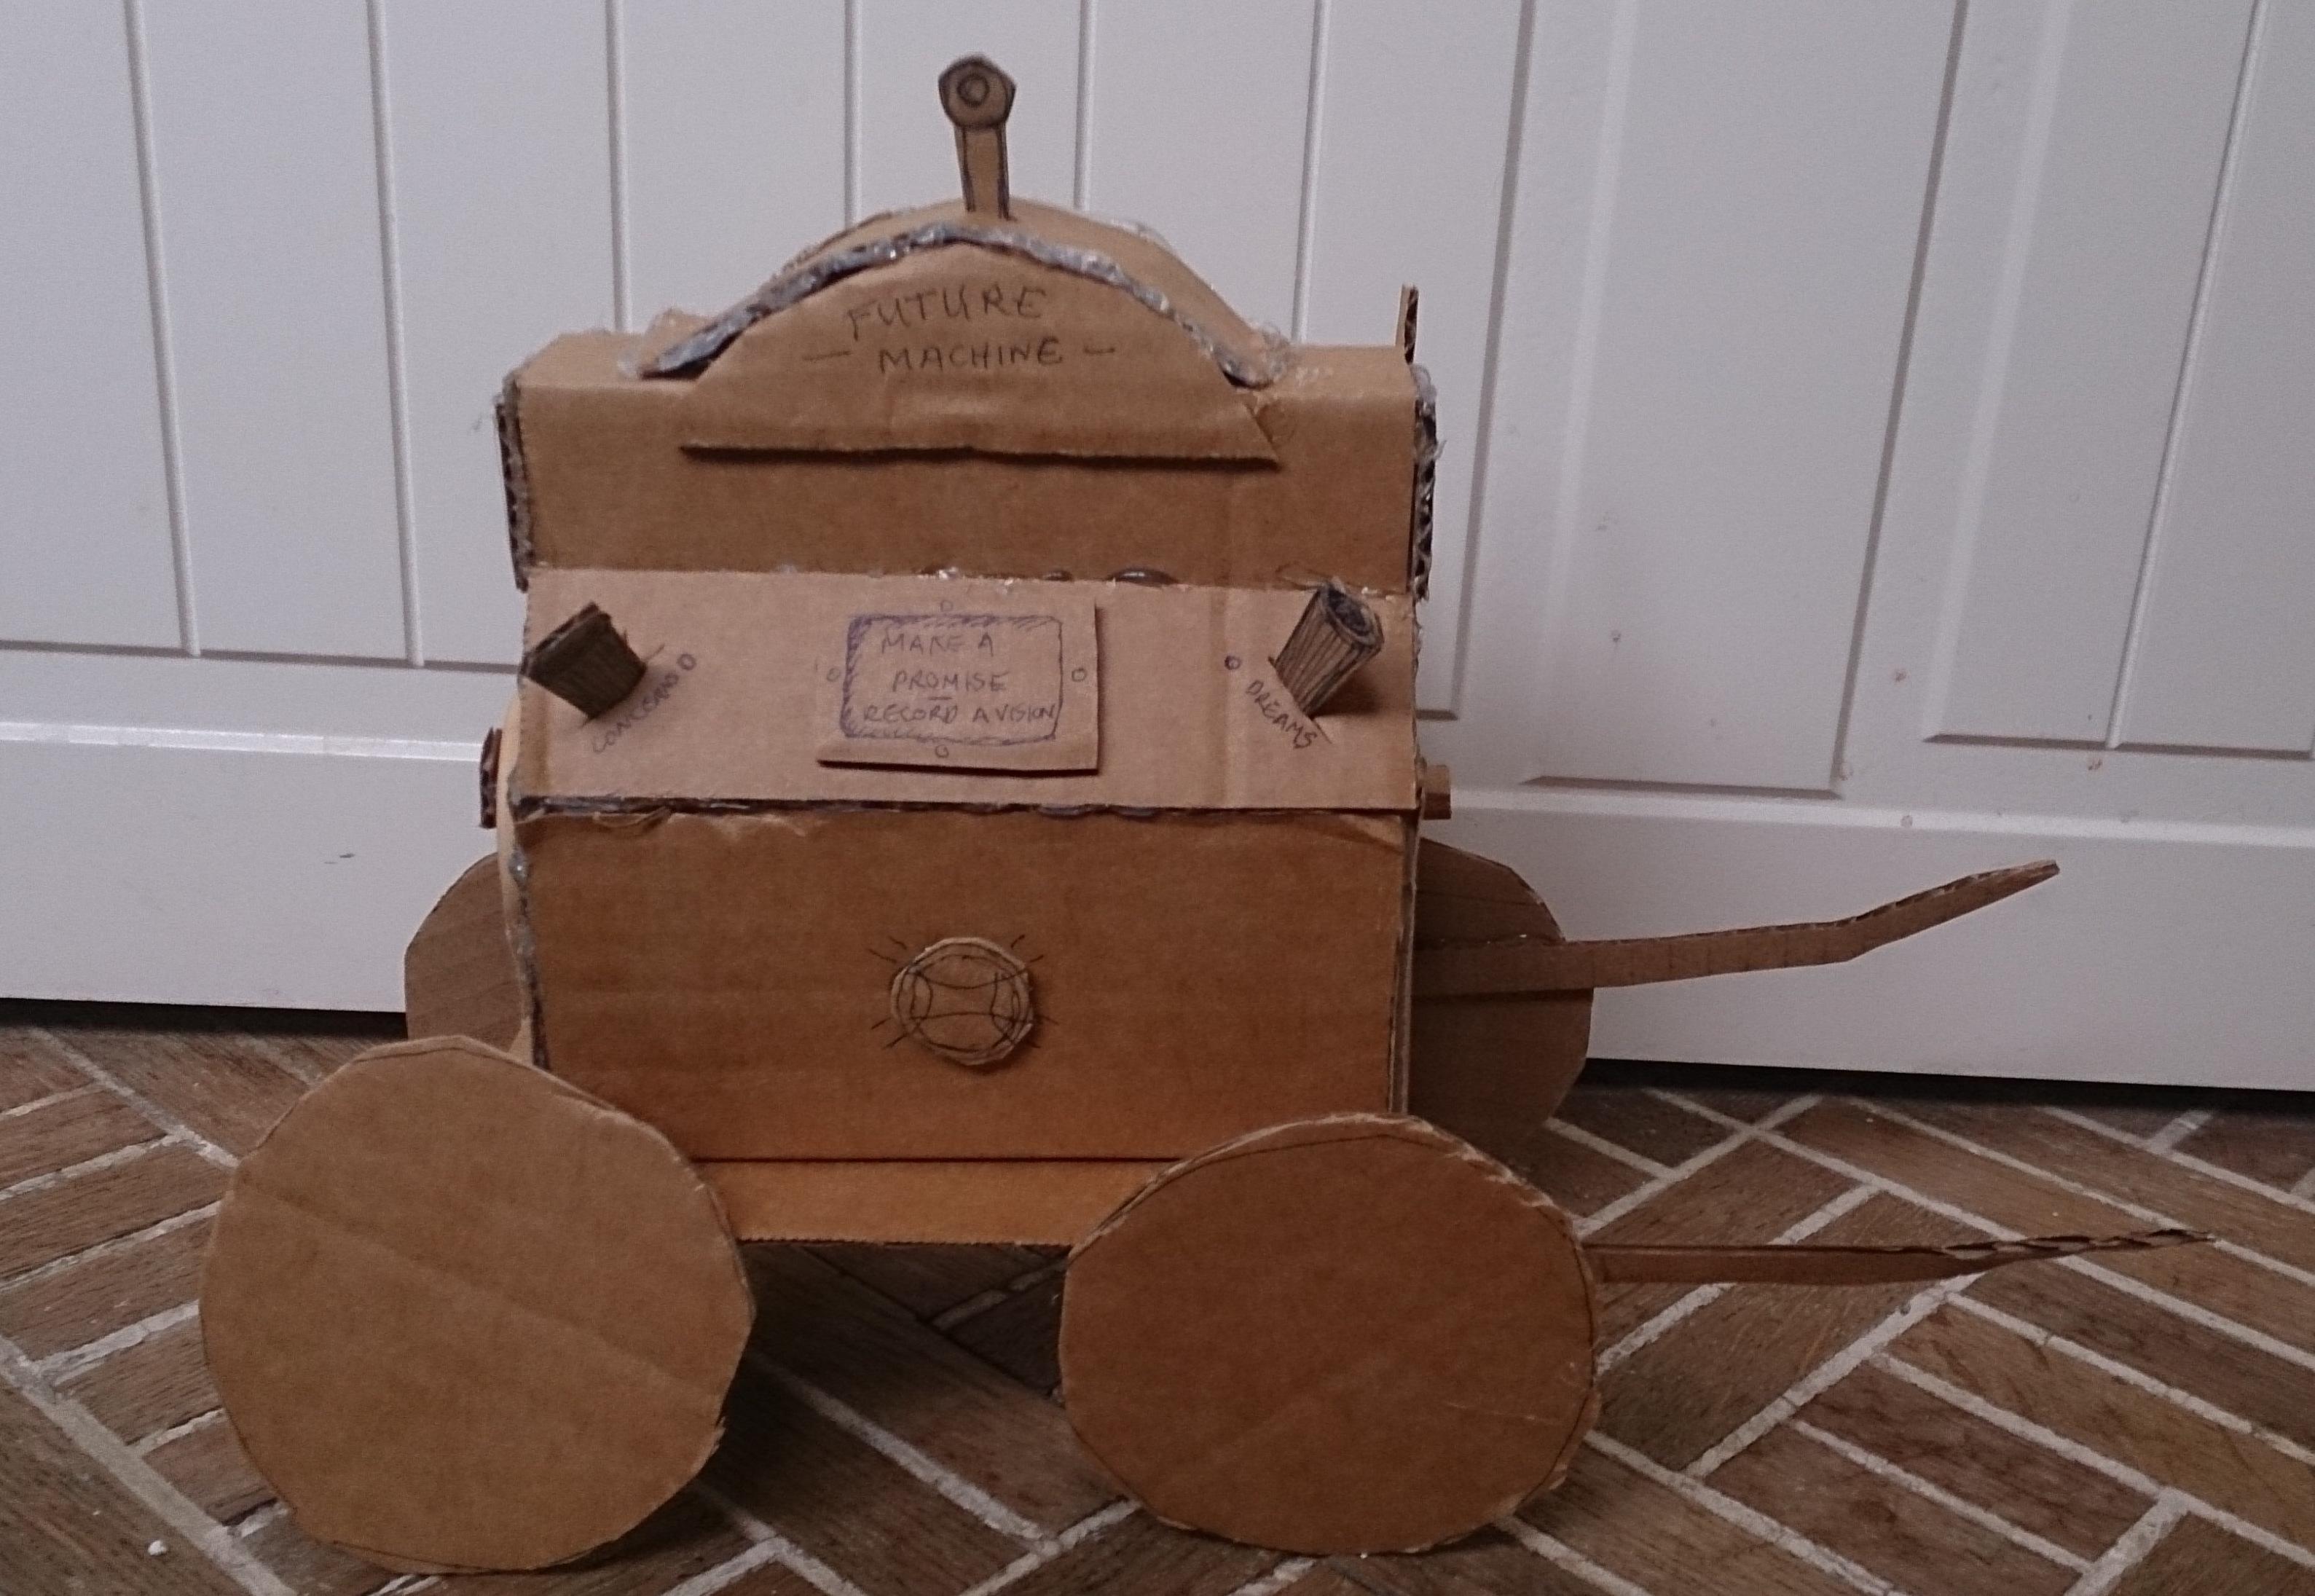 Cardboard mock up of the Future Machine